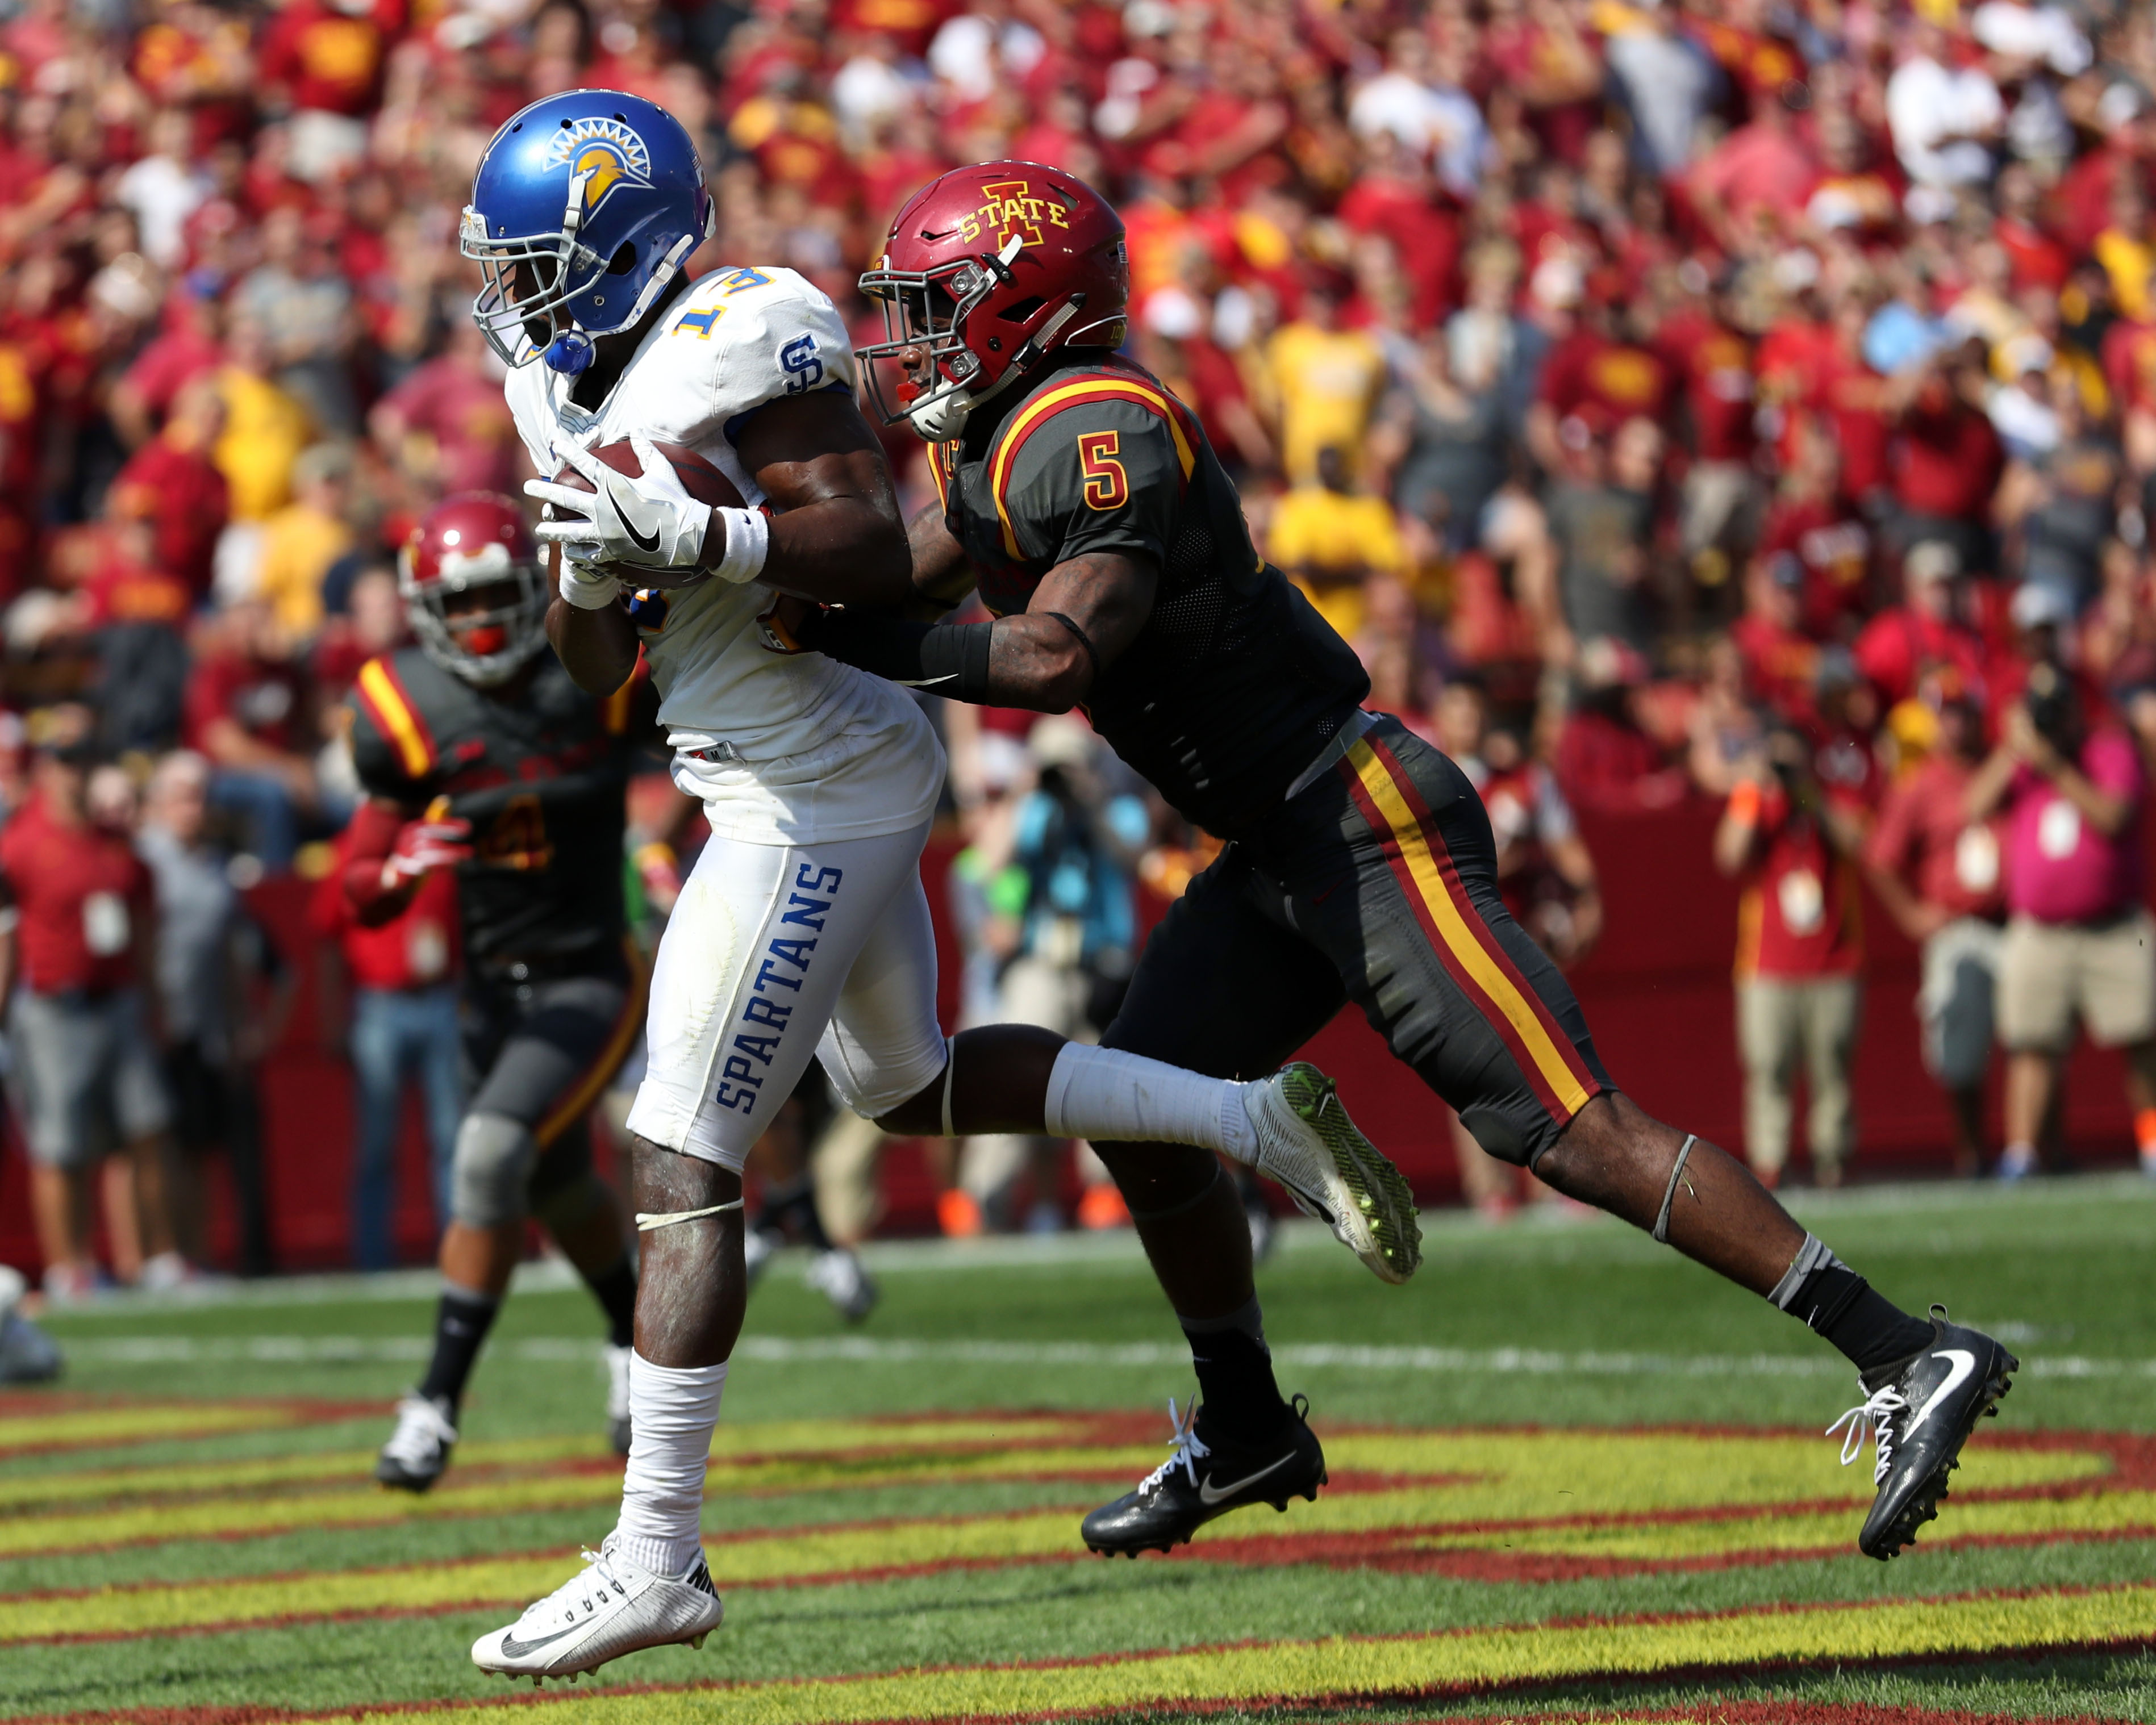 Sep 24, 2016; Ames, IA, USA; San Jose State Spartans wide receiver Tre Hartley (13) catches a touchdown pass in front of Iowa State Cyclones defensive back Kamari Cotton-Moya (5) at Jack Trice Stadium. Mandatory Credit: Reese Strickland-USA TODAY Sports